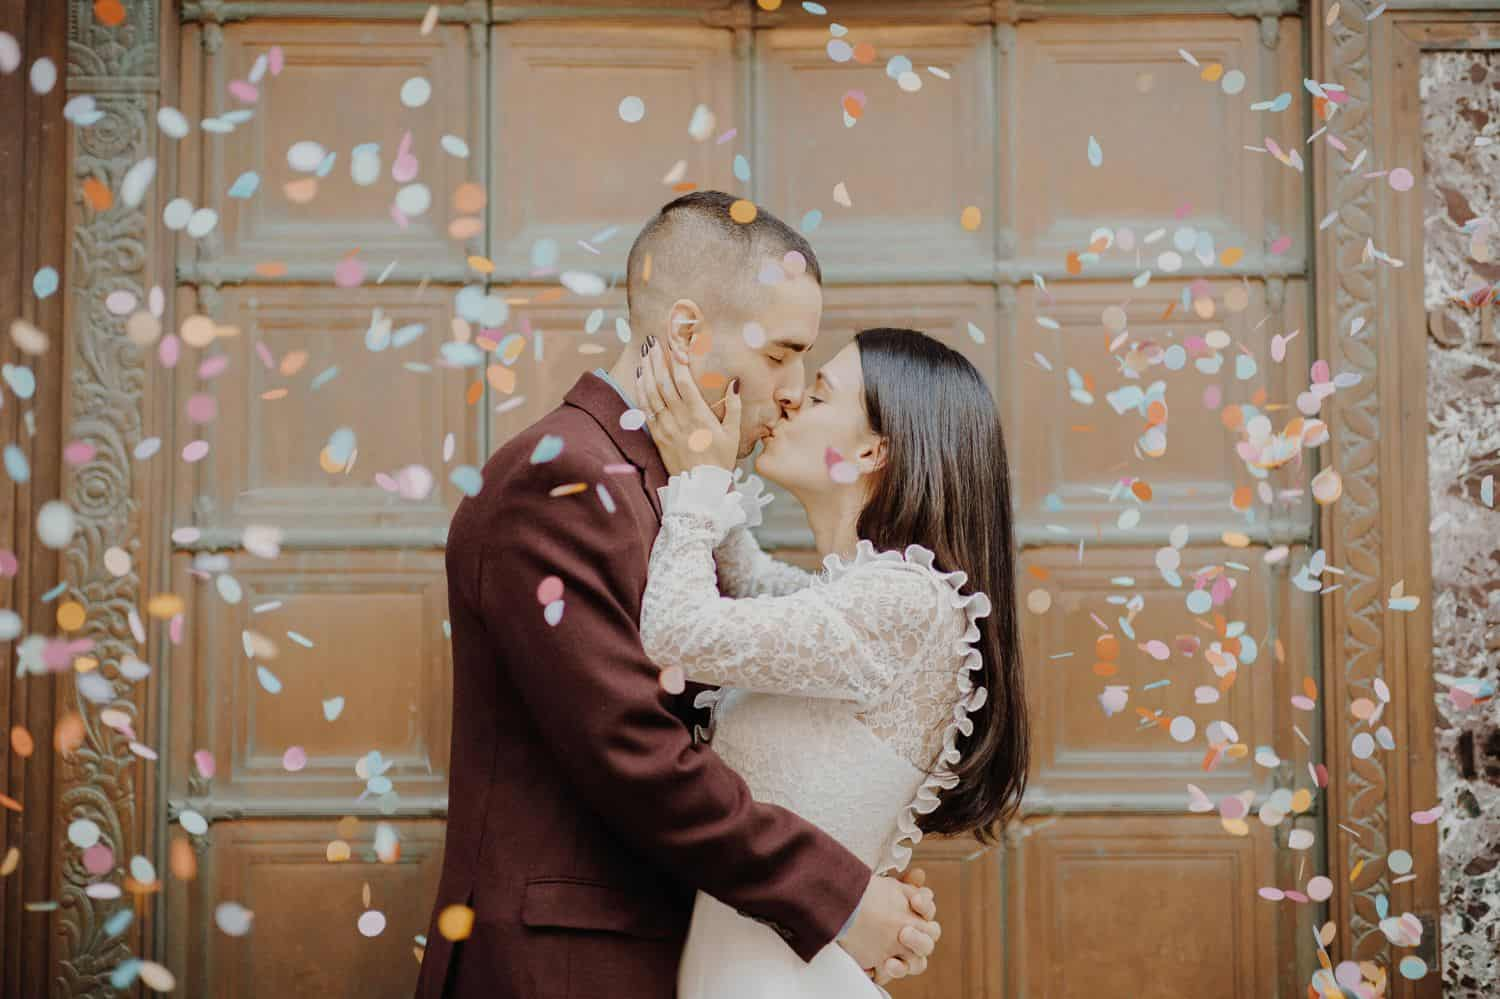 Festively dressed newlyweds kiss amid a storm of confetti.